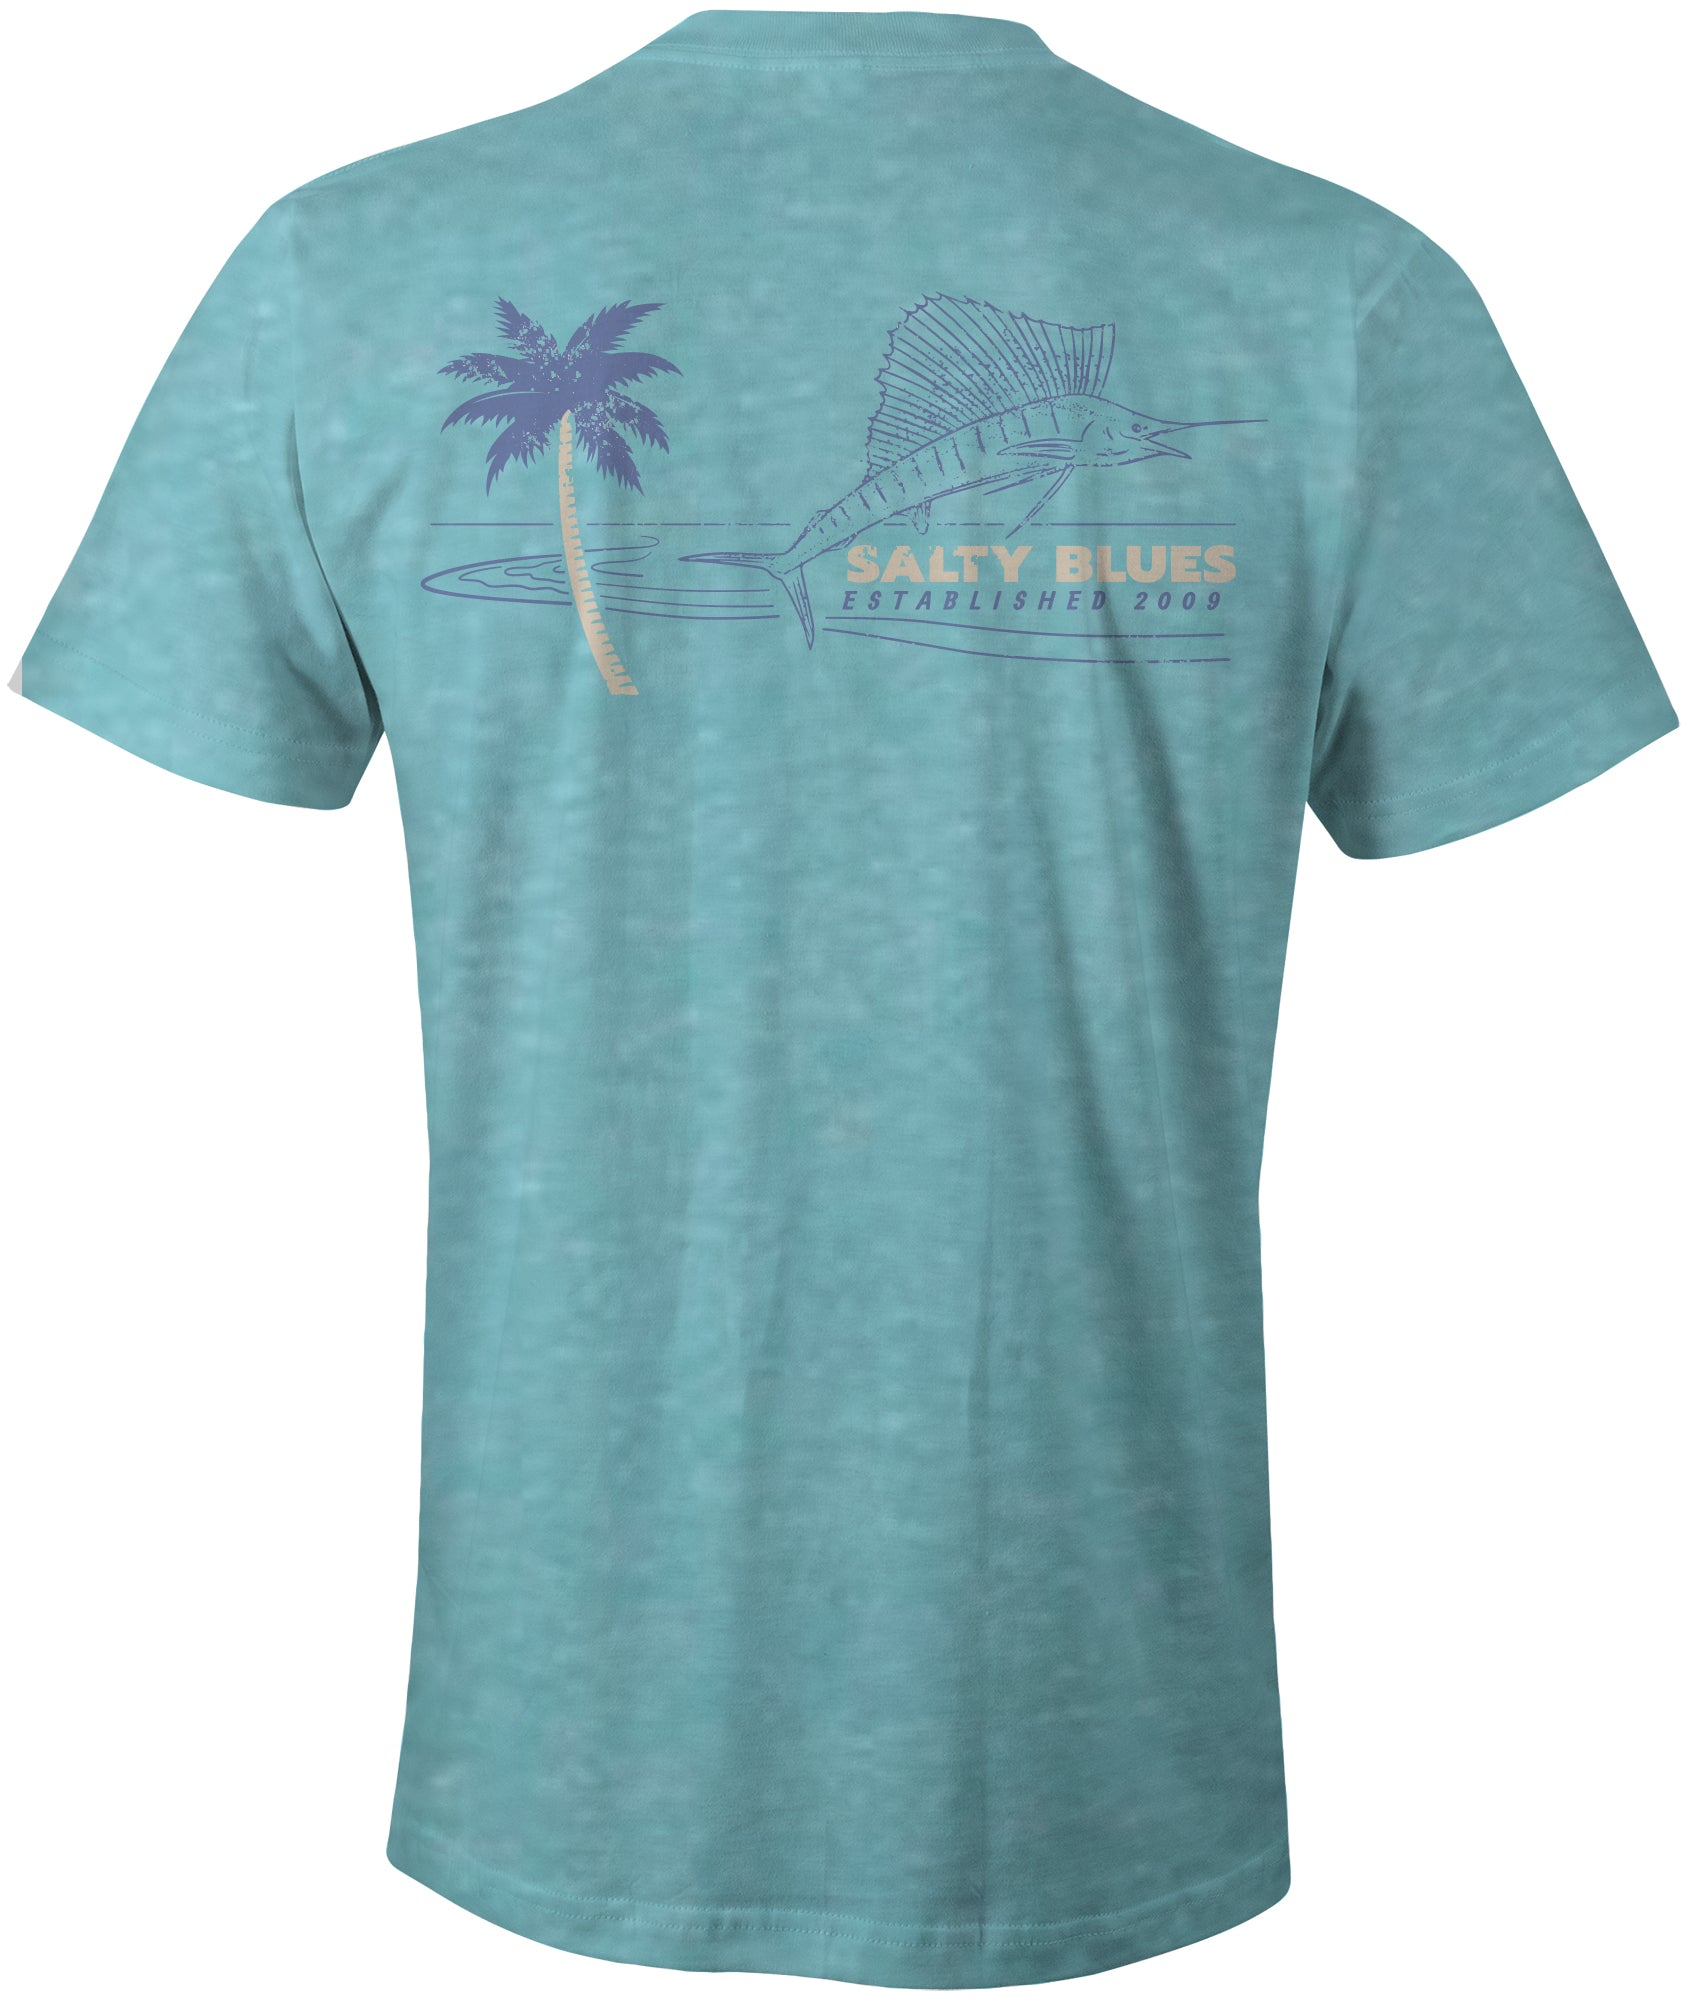 Sailfish - T-Shirt - Latitudes & Attitudes LLC